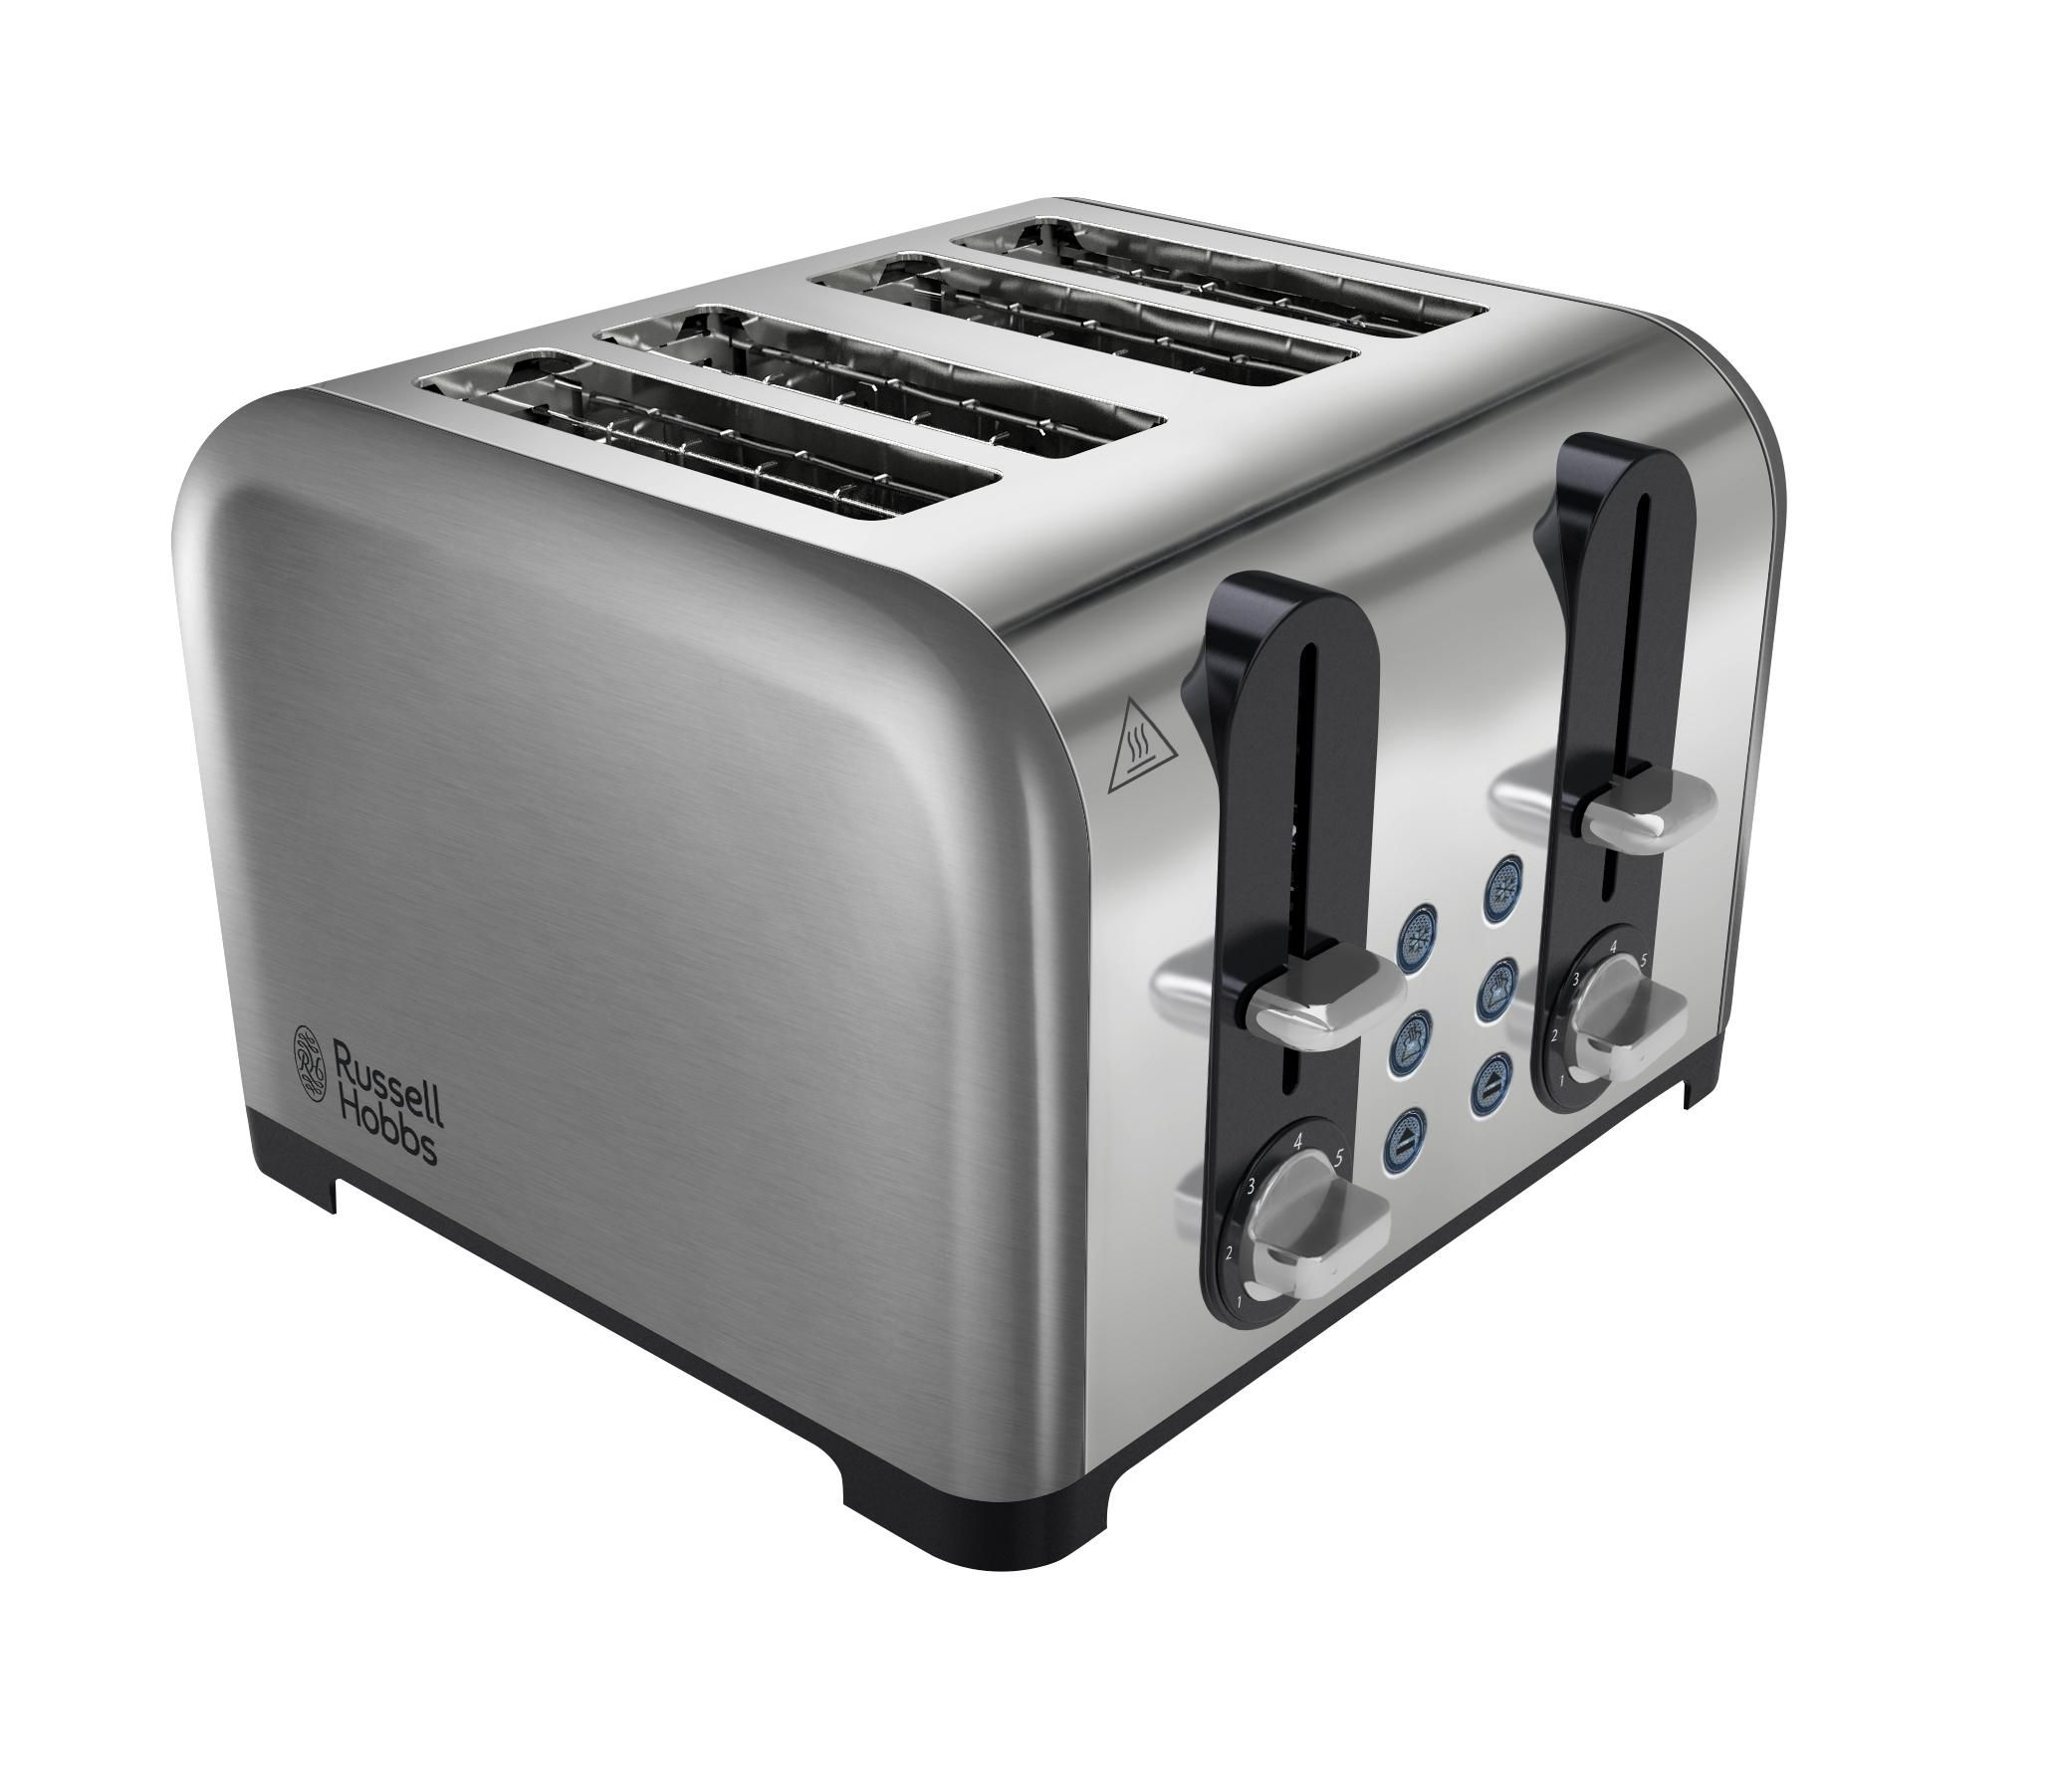 russel hobbs 4 slice toaster   stainless steel   in home furniture  u0026 diy appliances small kitchen appliances russell hobbs 22400 wide slot four slice toaster   stainless steel      rh   pinterest com